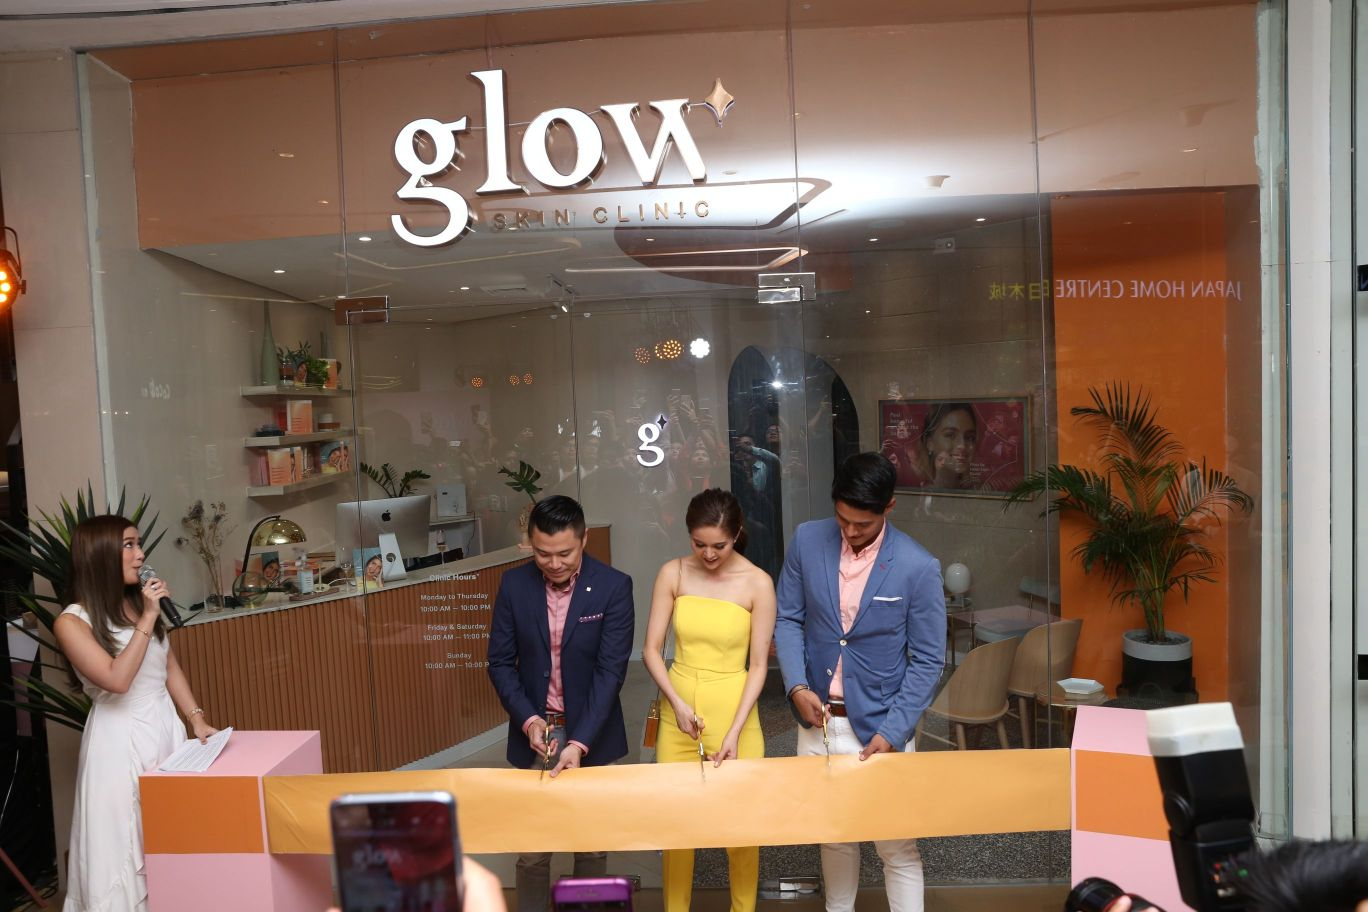 Glow Skin Clinic: Accessible Self-Care, Pampering and Celebration